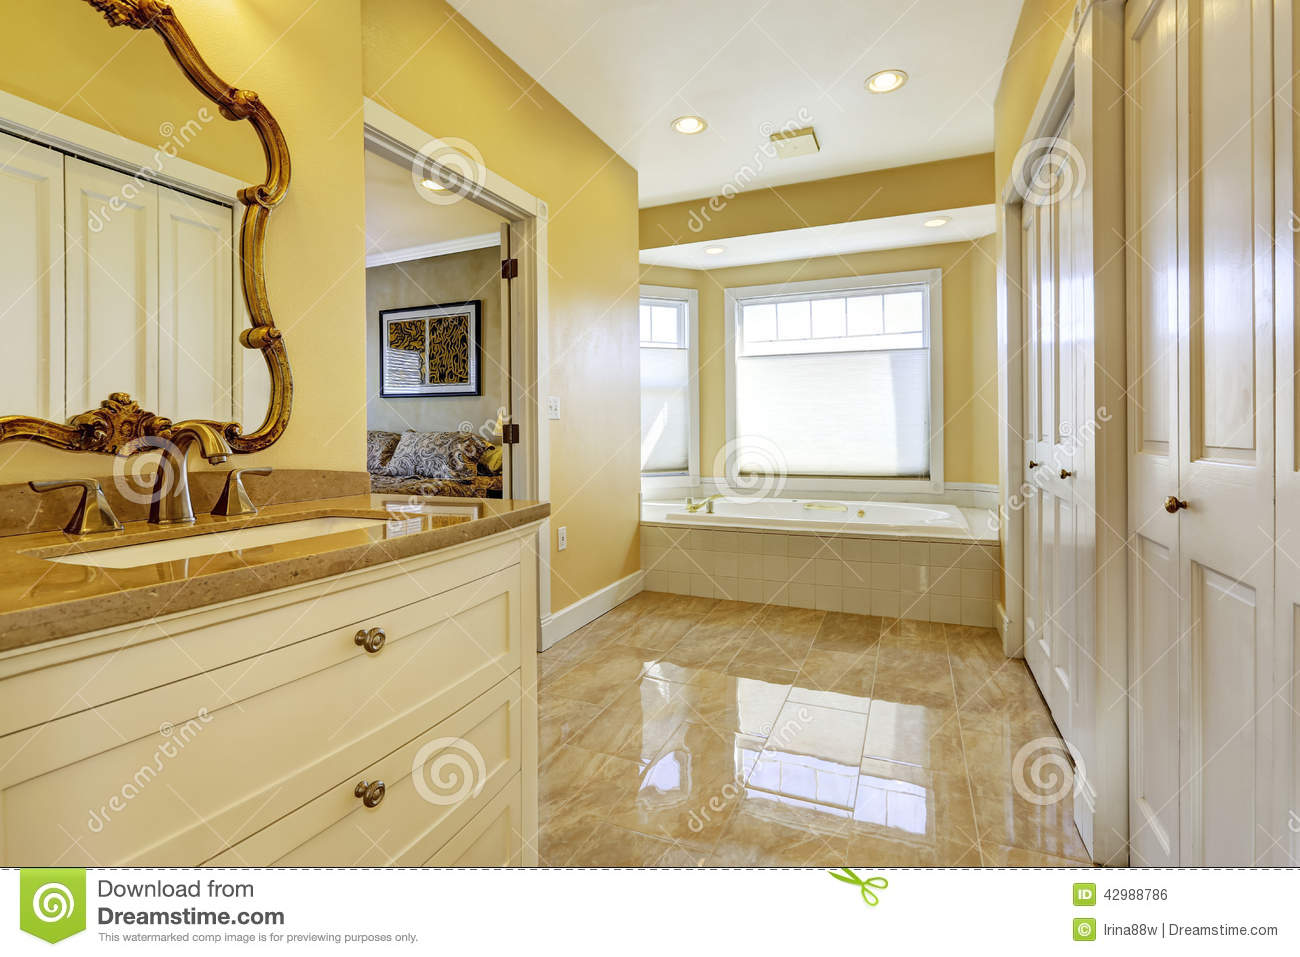 Bathroom with shiny tile floor in master bedroom stock photo bathroom with shiny tile floor in master bedroom dailygadgetfo Images